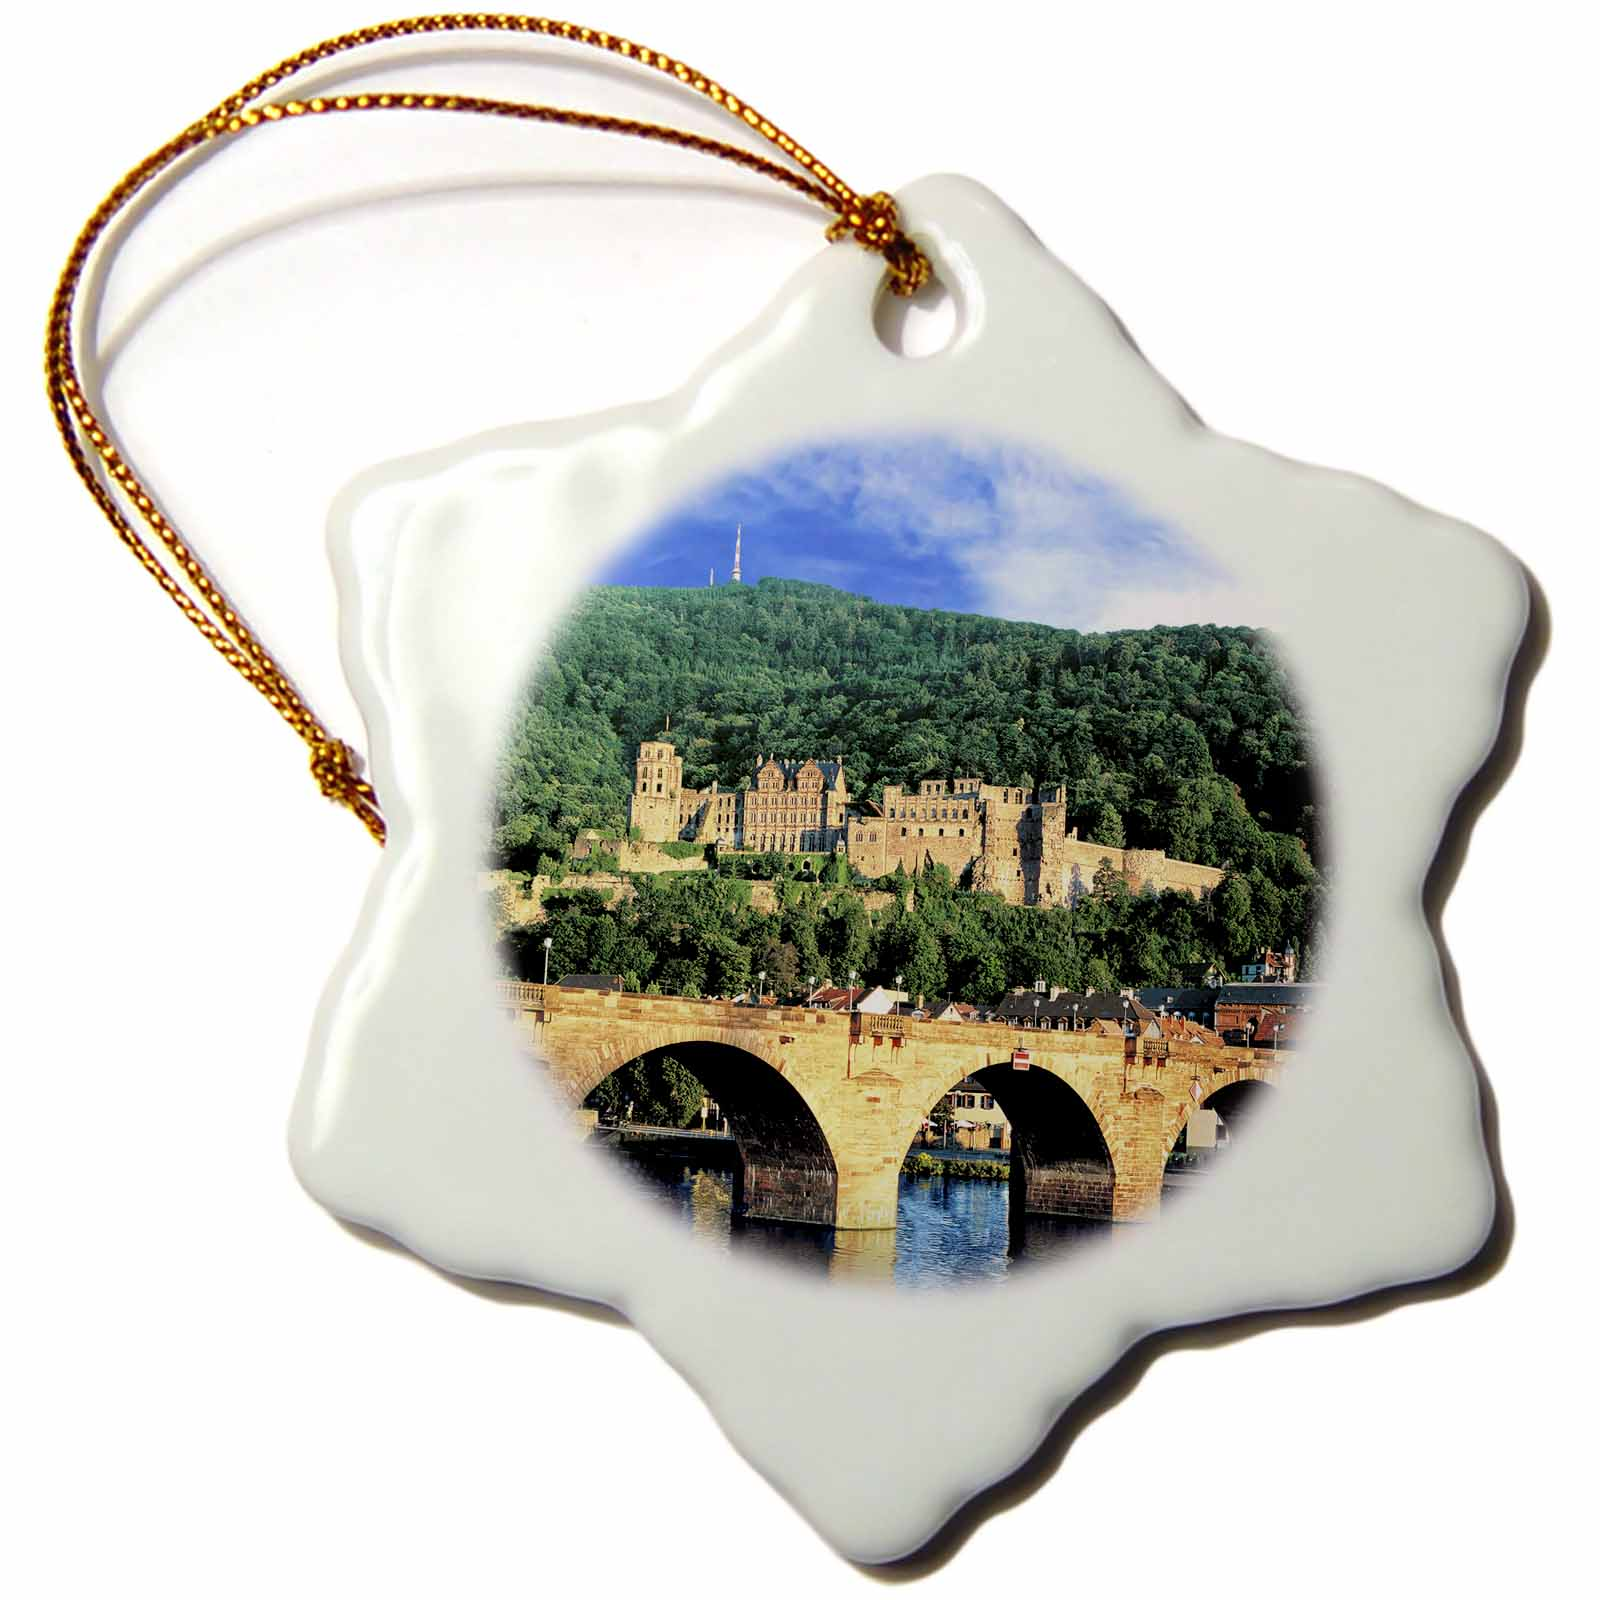 3dRose Heidelberg Castle, Neckar River, Alte bridge, Germany - EU10 MGL0217 - Miva Stock - Snowflake Ornament, 3-inch